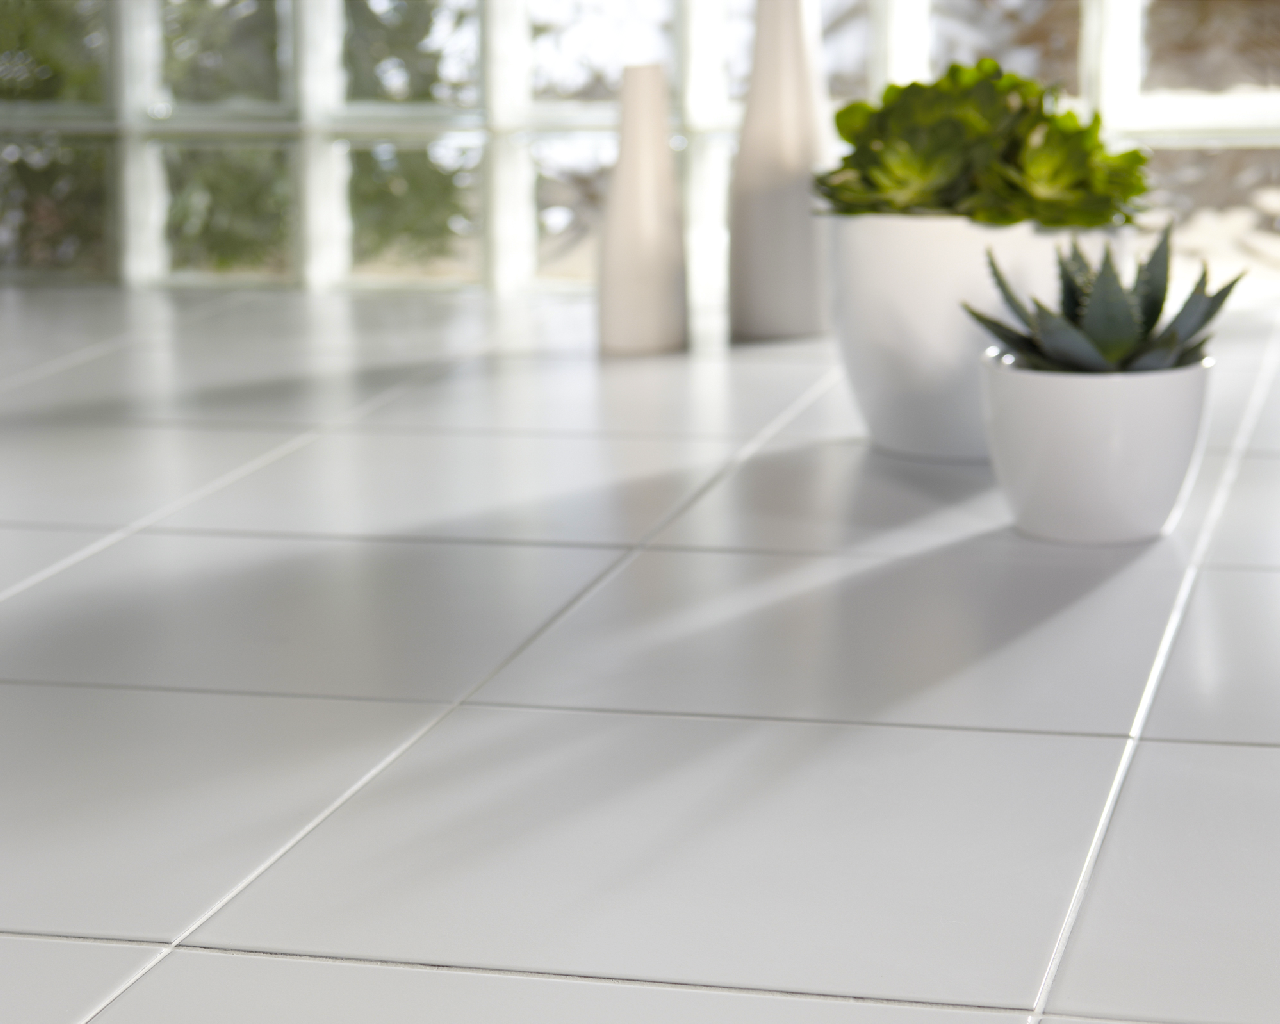 Difference between glazed and unglazed tiles httpbit11tcxeo pure white quartz floor tiles ceramic or porcelain tile flooring is very durable and a great investment in your home dailygadgetfo Images